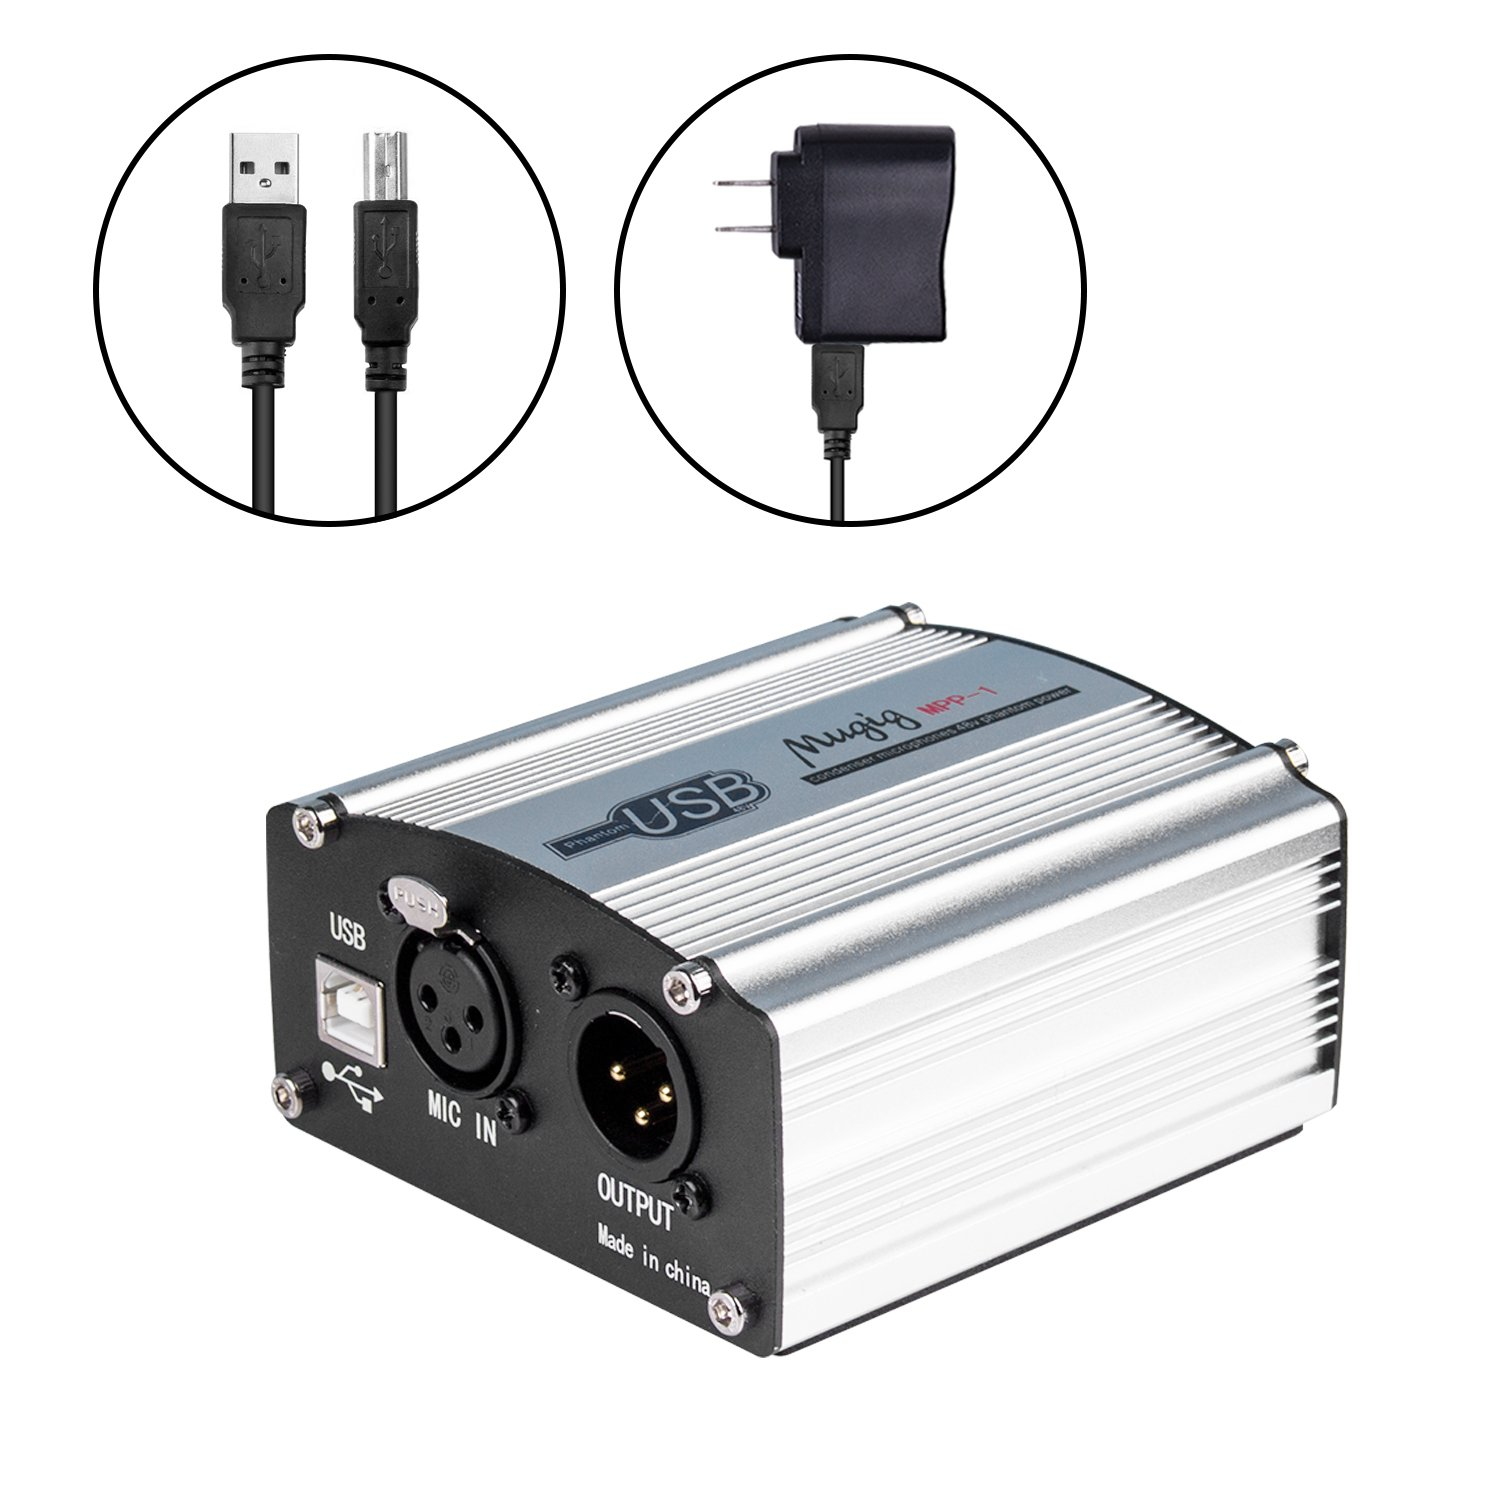 Mugig Phantom Power Supply for Condenser Microphone, 48V Adaptable Professional Power Supply for Studio Music Recording